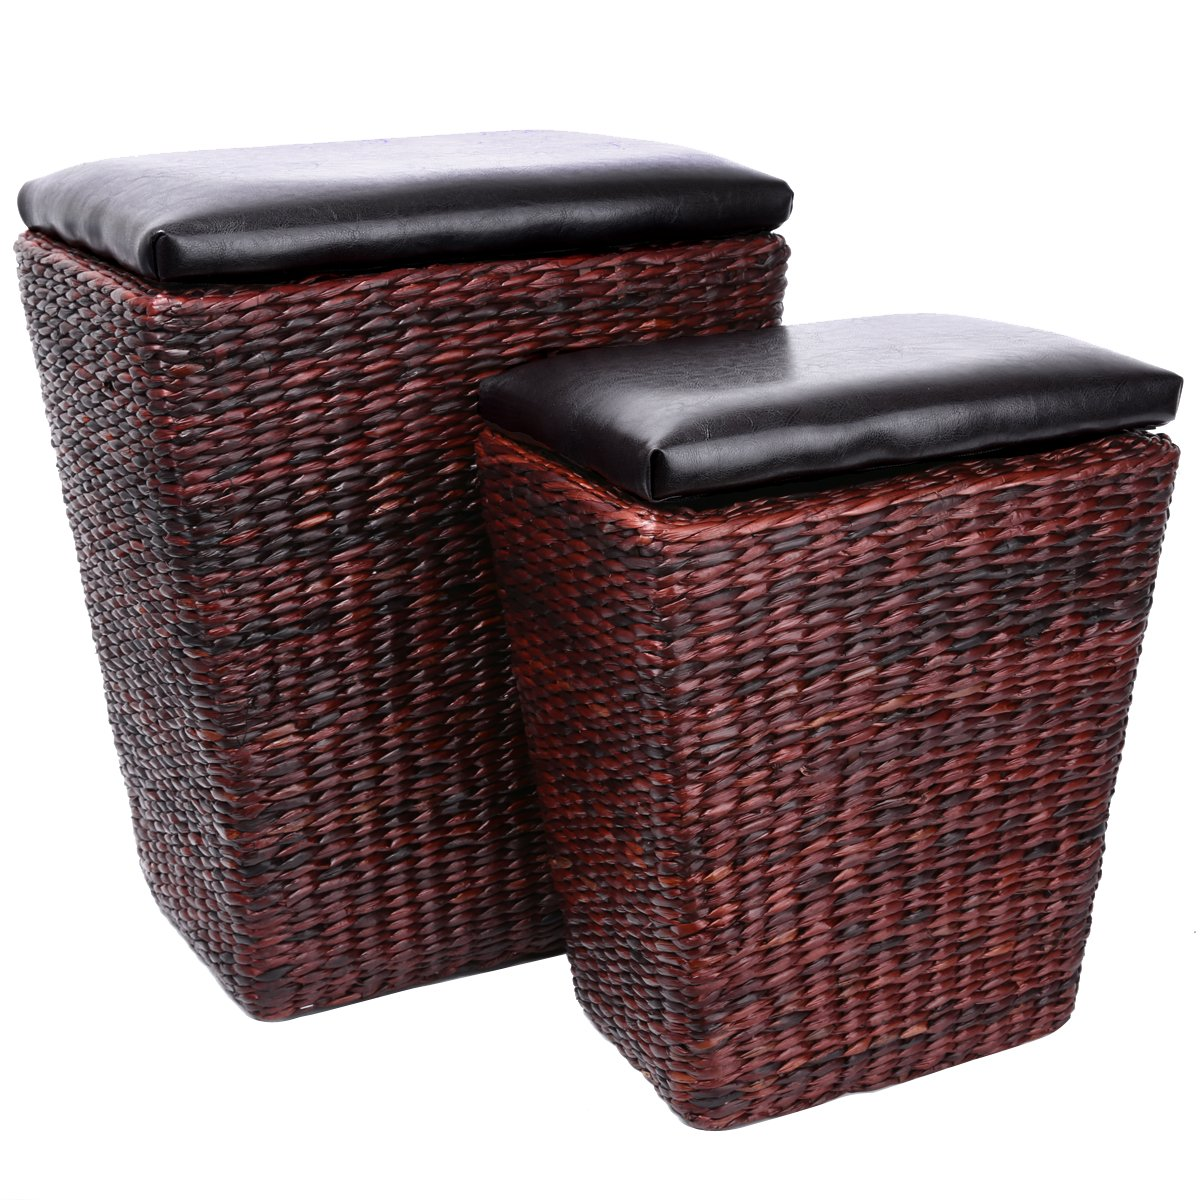 Eshow Ottoman Rattan Ottoman With Storage Hassocks And Ottomans Foot Rest  Pouf Ottoman Foot Stools Cube Decoration Furniture Leather Ottoman Seating  Storage ...